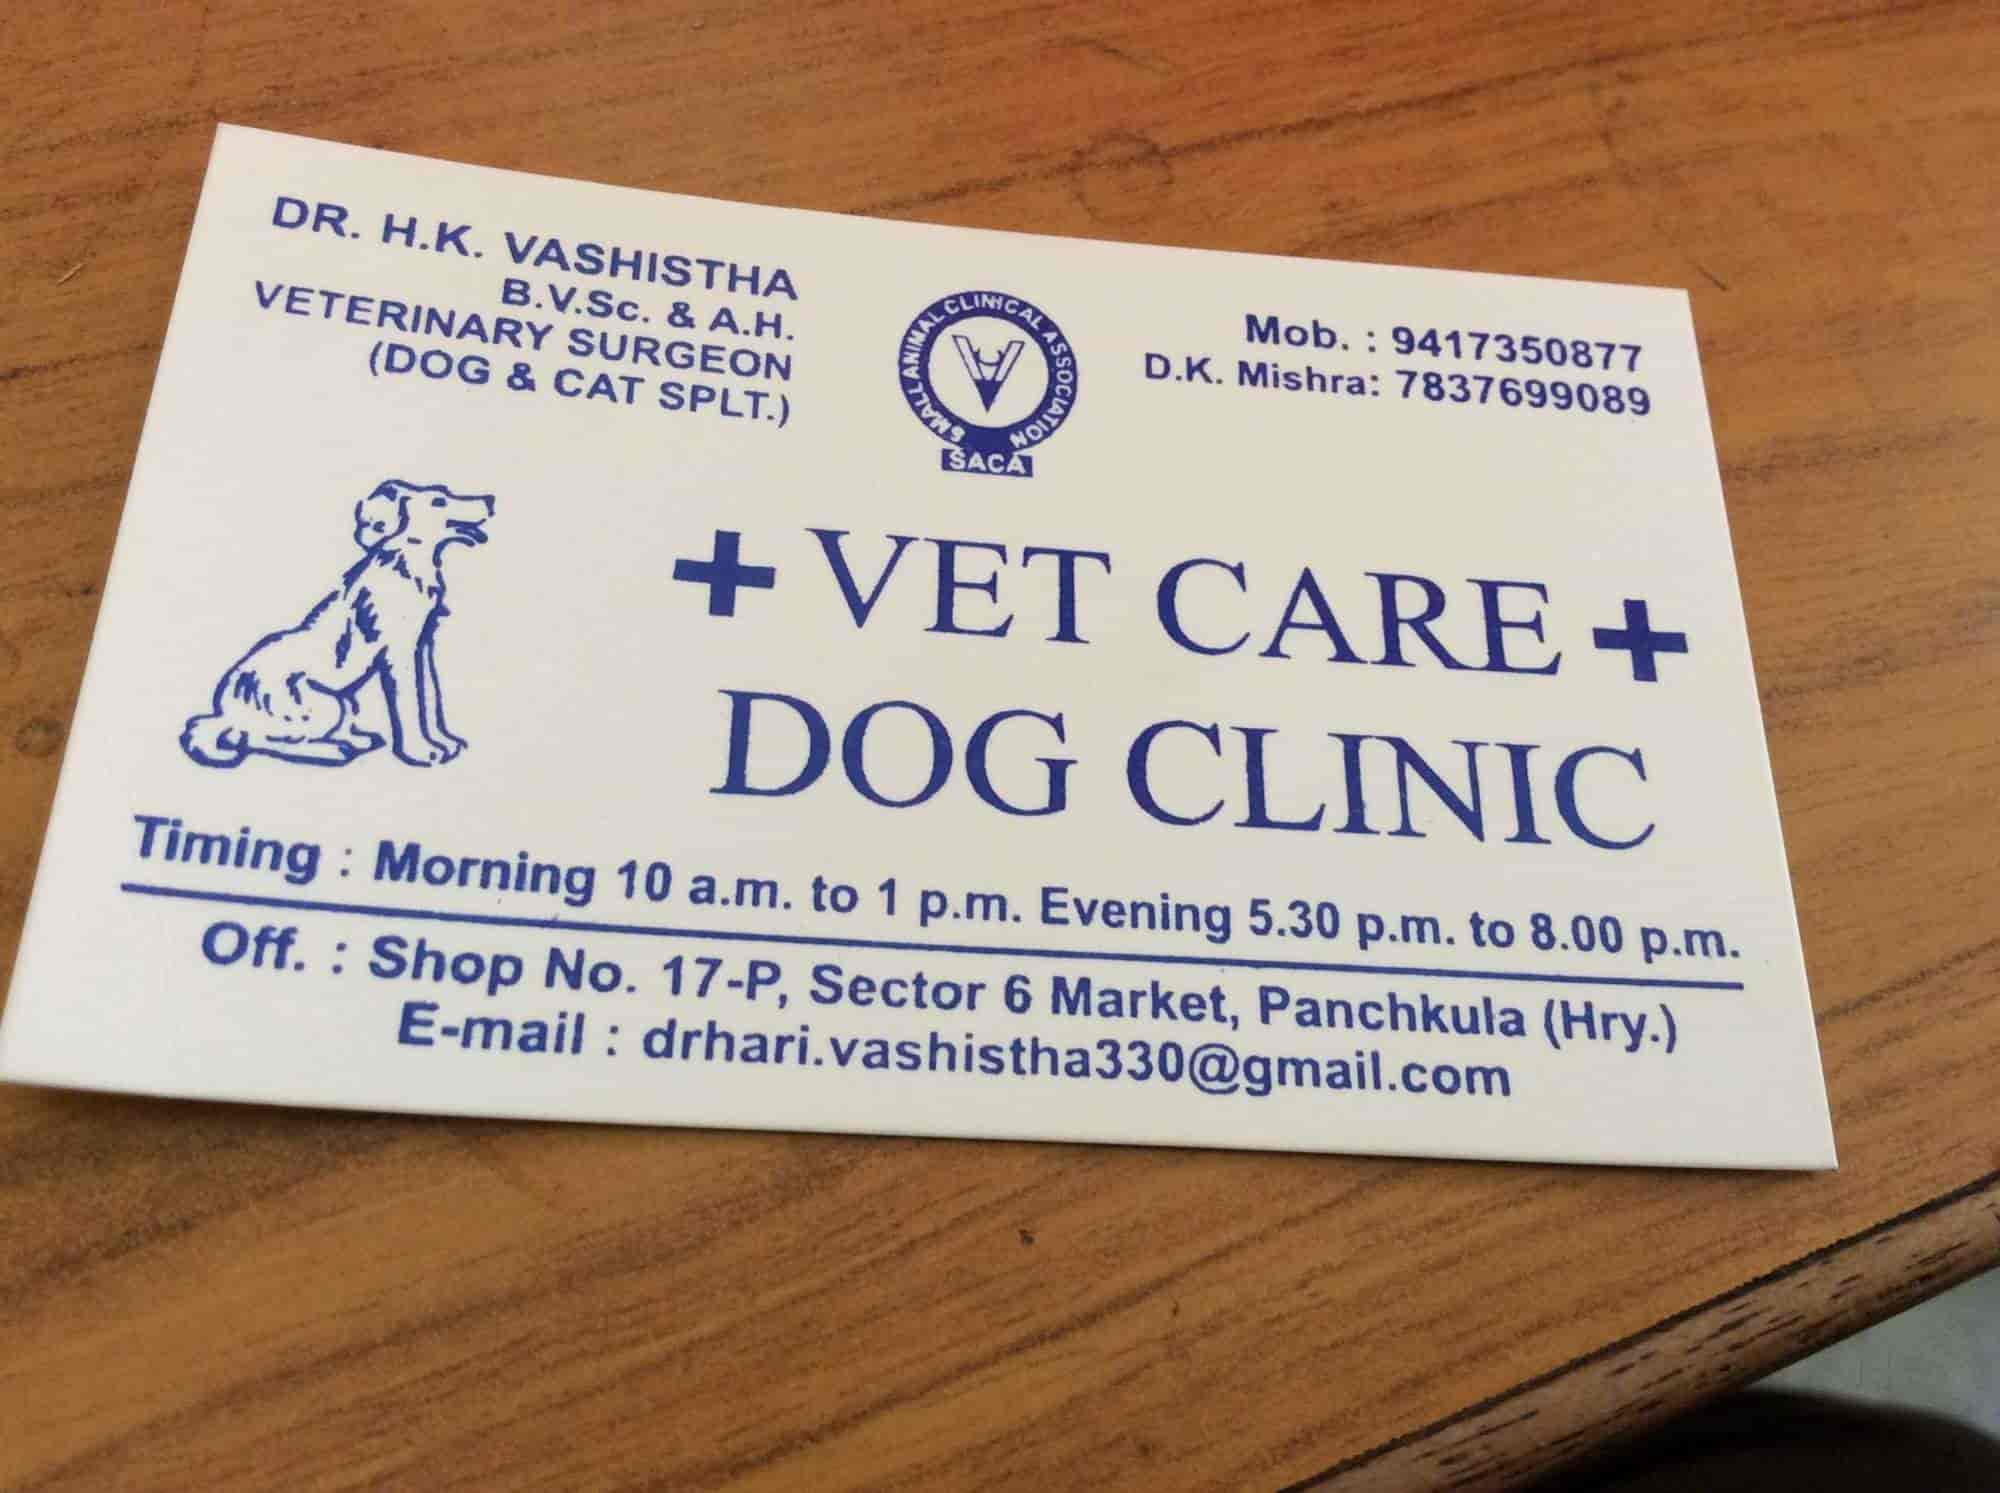 Vet Care Dog Clinic Photos, Sector 6, Chandigarh- Pictures & Images ...